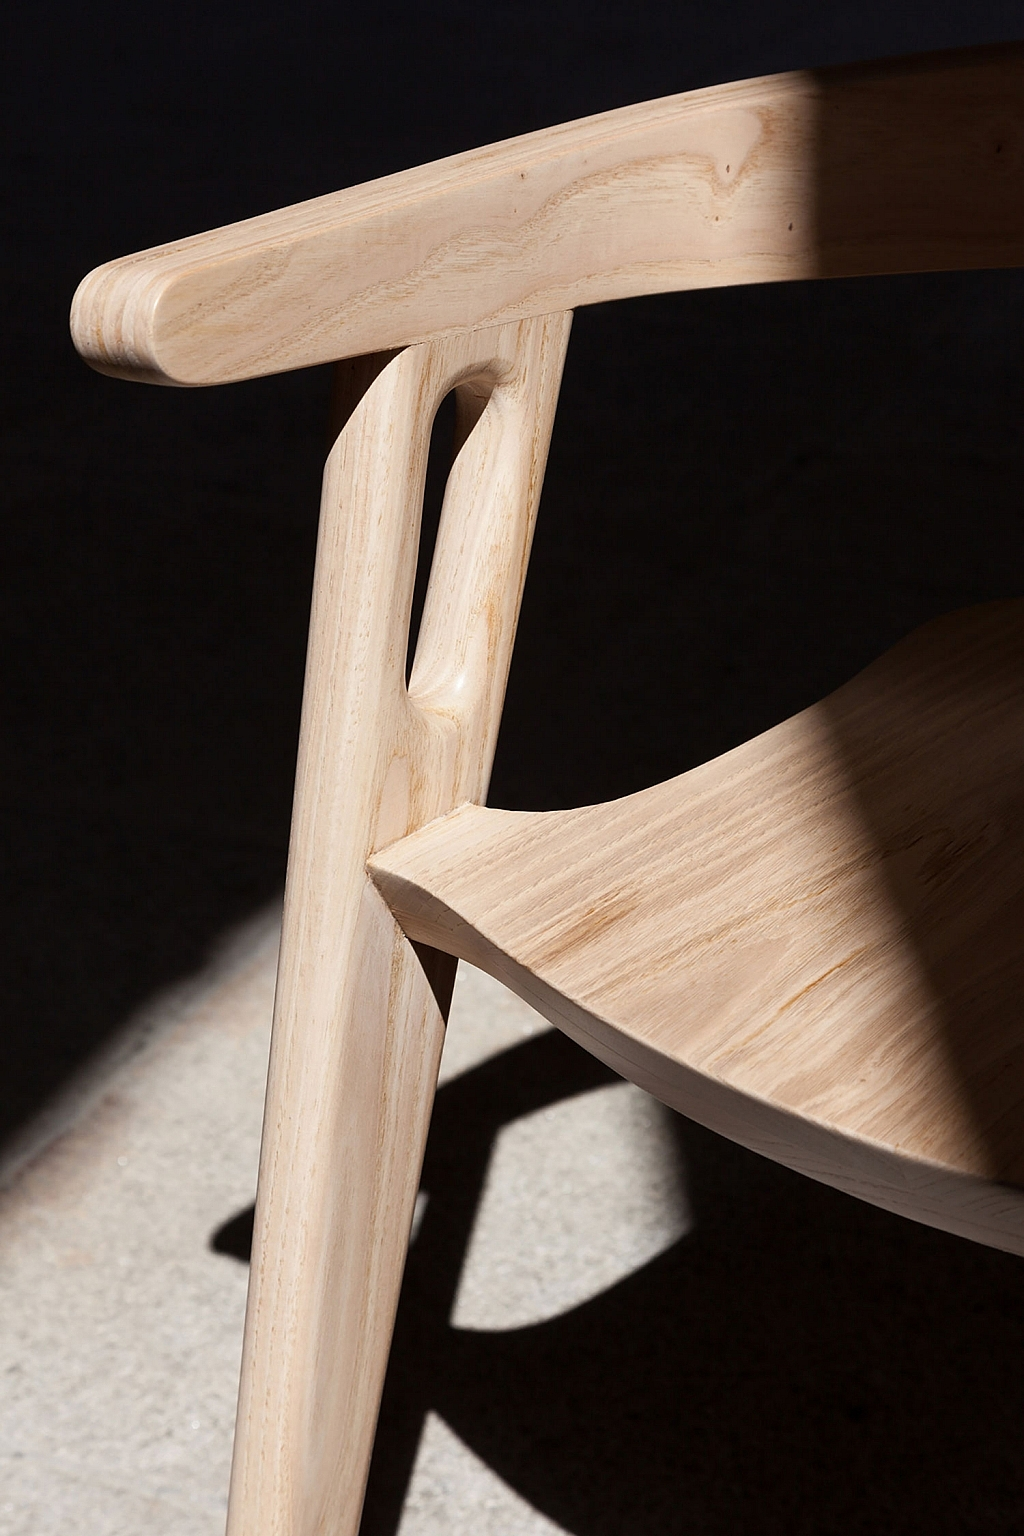 wooden-muros-chair-by-domohomo-arquitectos-2-1024x1536